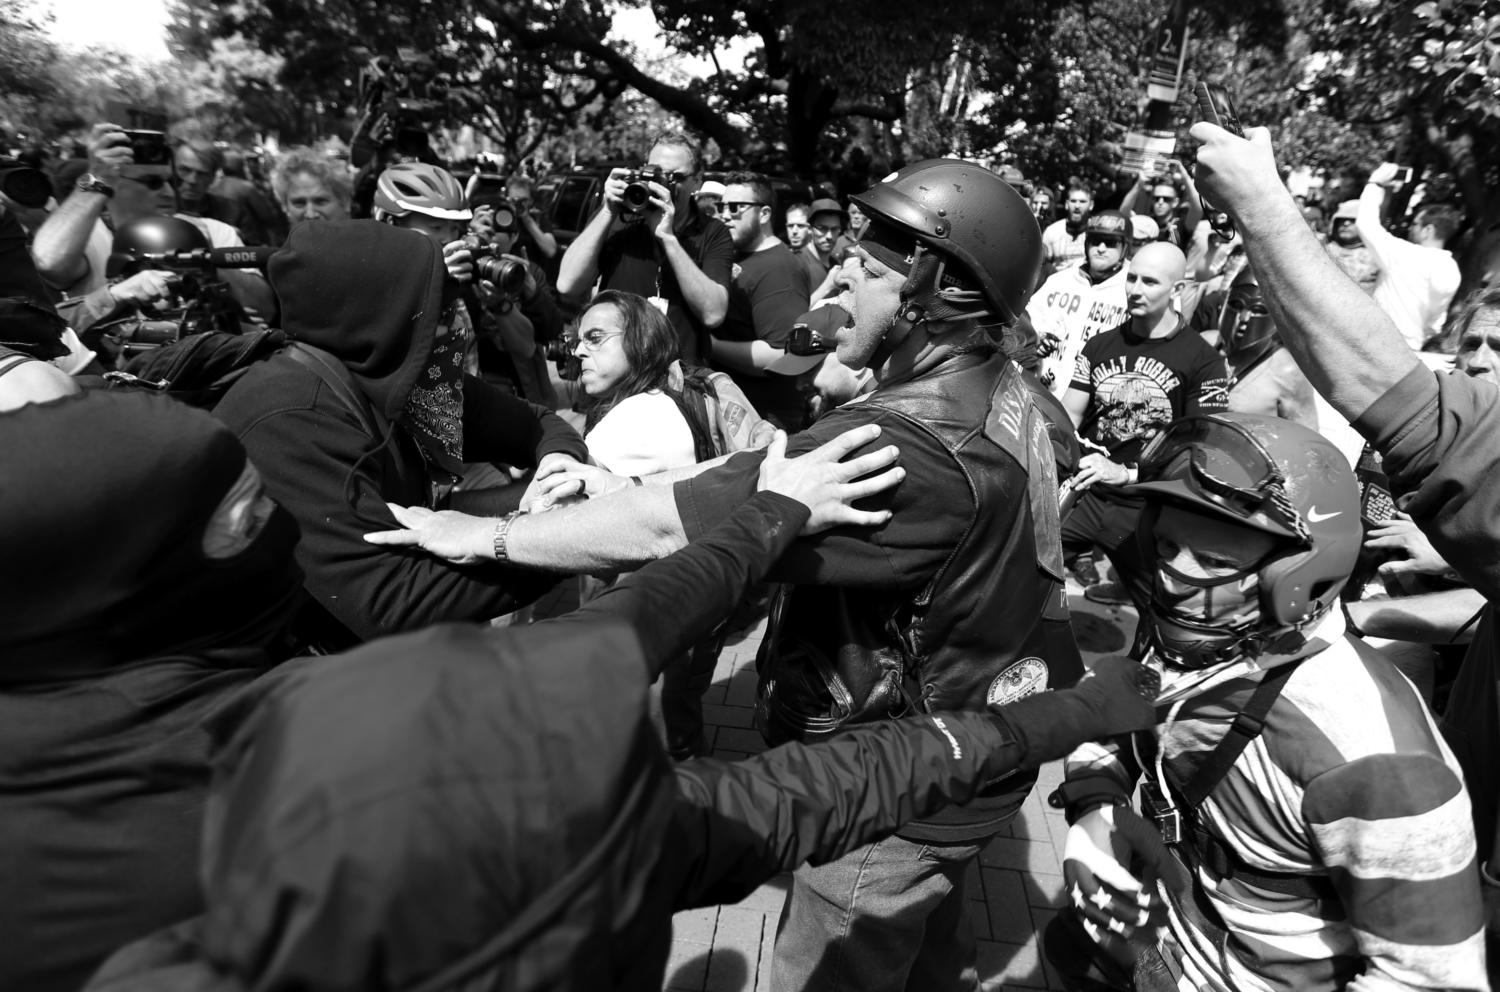 Anti- and pro-Trump supporters clash during competing demonstrations at Martin Luther King Jr. Civic Center Park in Berkeley, Calif., on Saturday, April 15, 2017. (Anda Chu/Bay Area News Group/TNS)